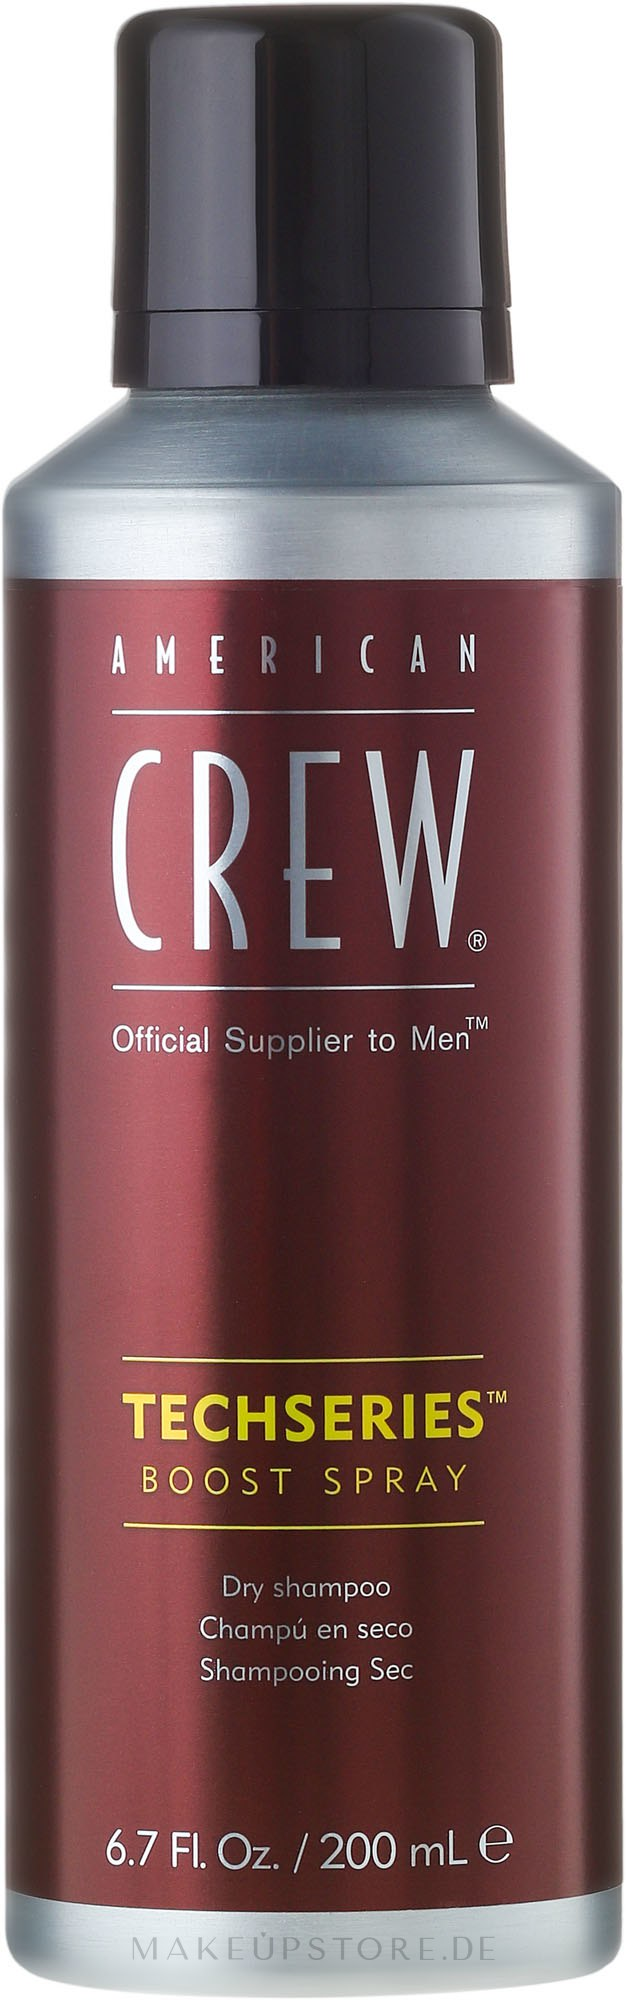 Auffrischendes Stylingspray mit mittlerem Halt für längeres Haar - American Crew Official Supplier to Men Techseries Boost Spray — Bild 200 ml